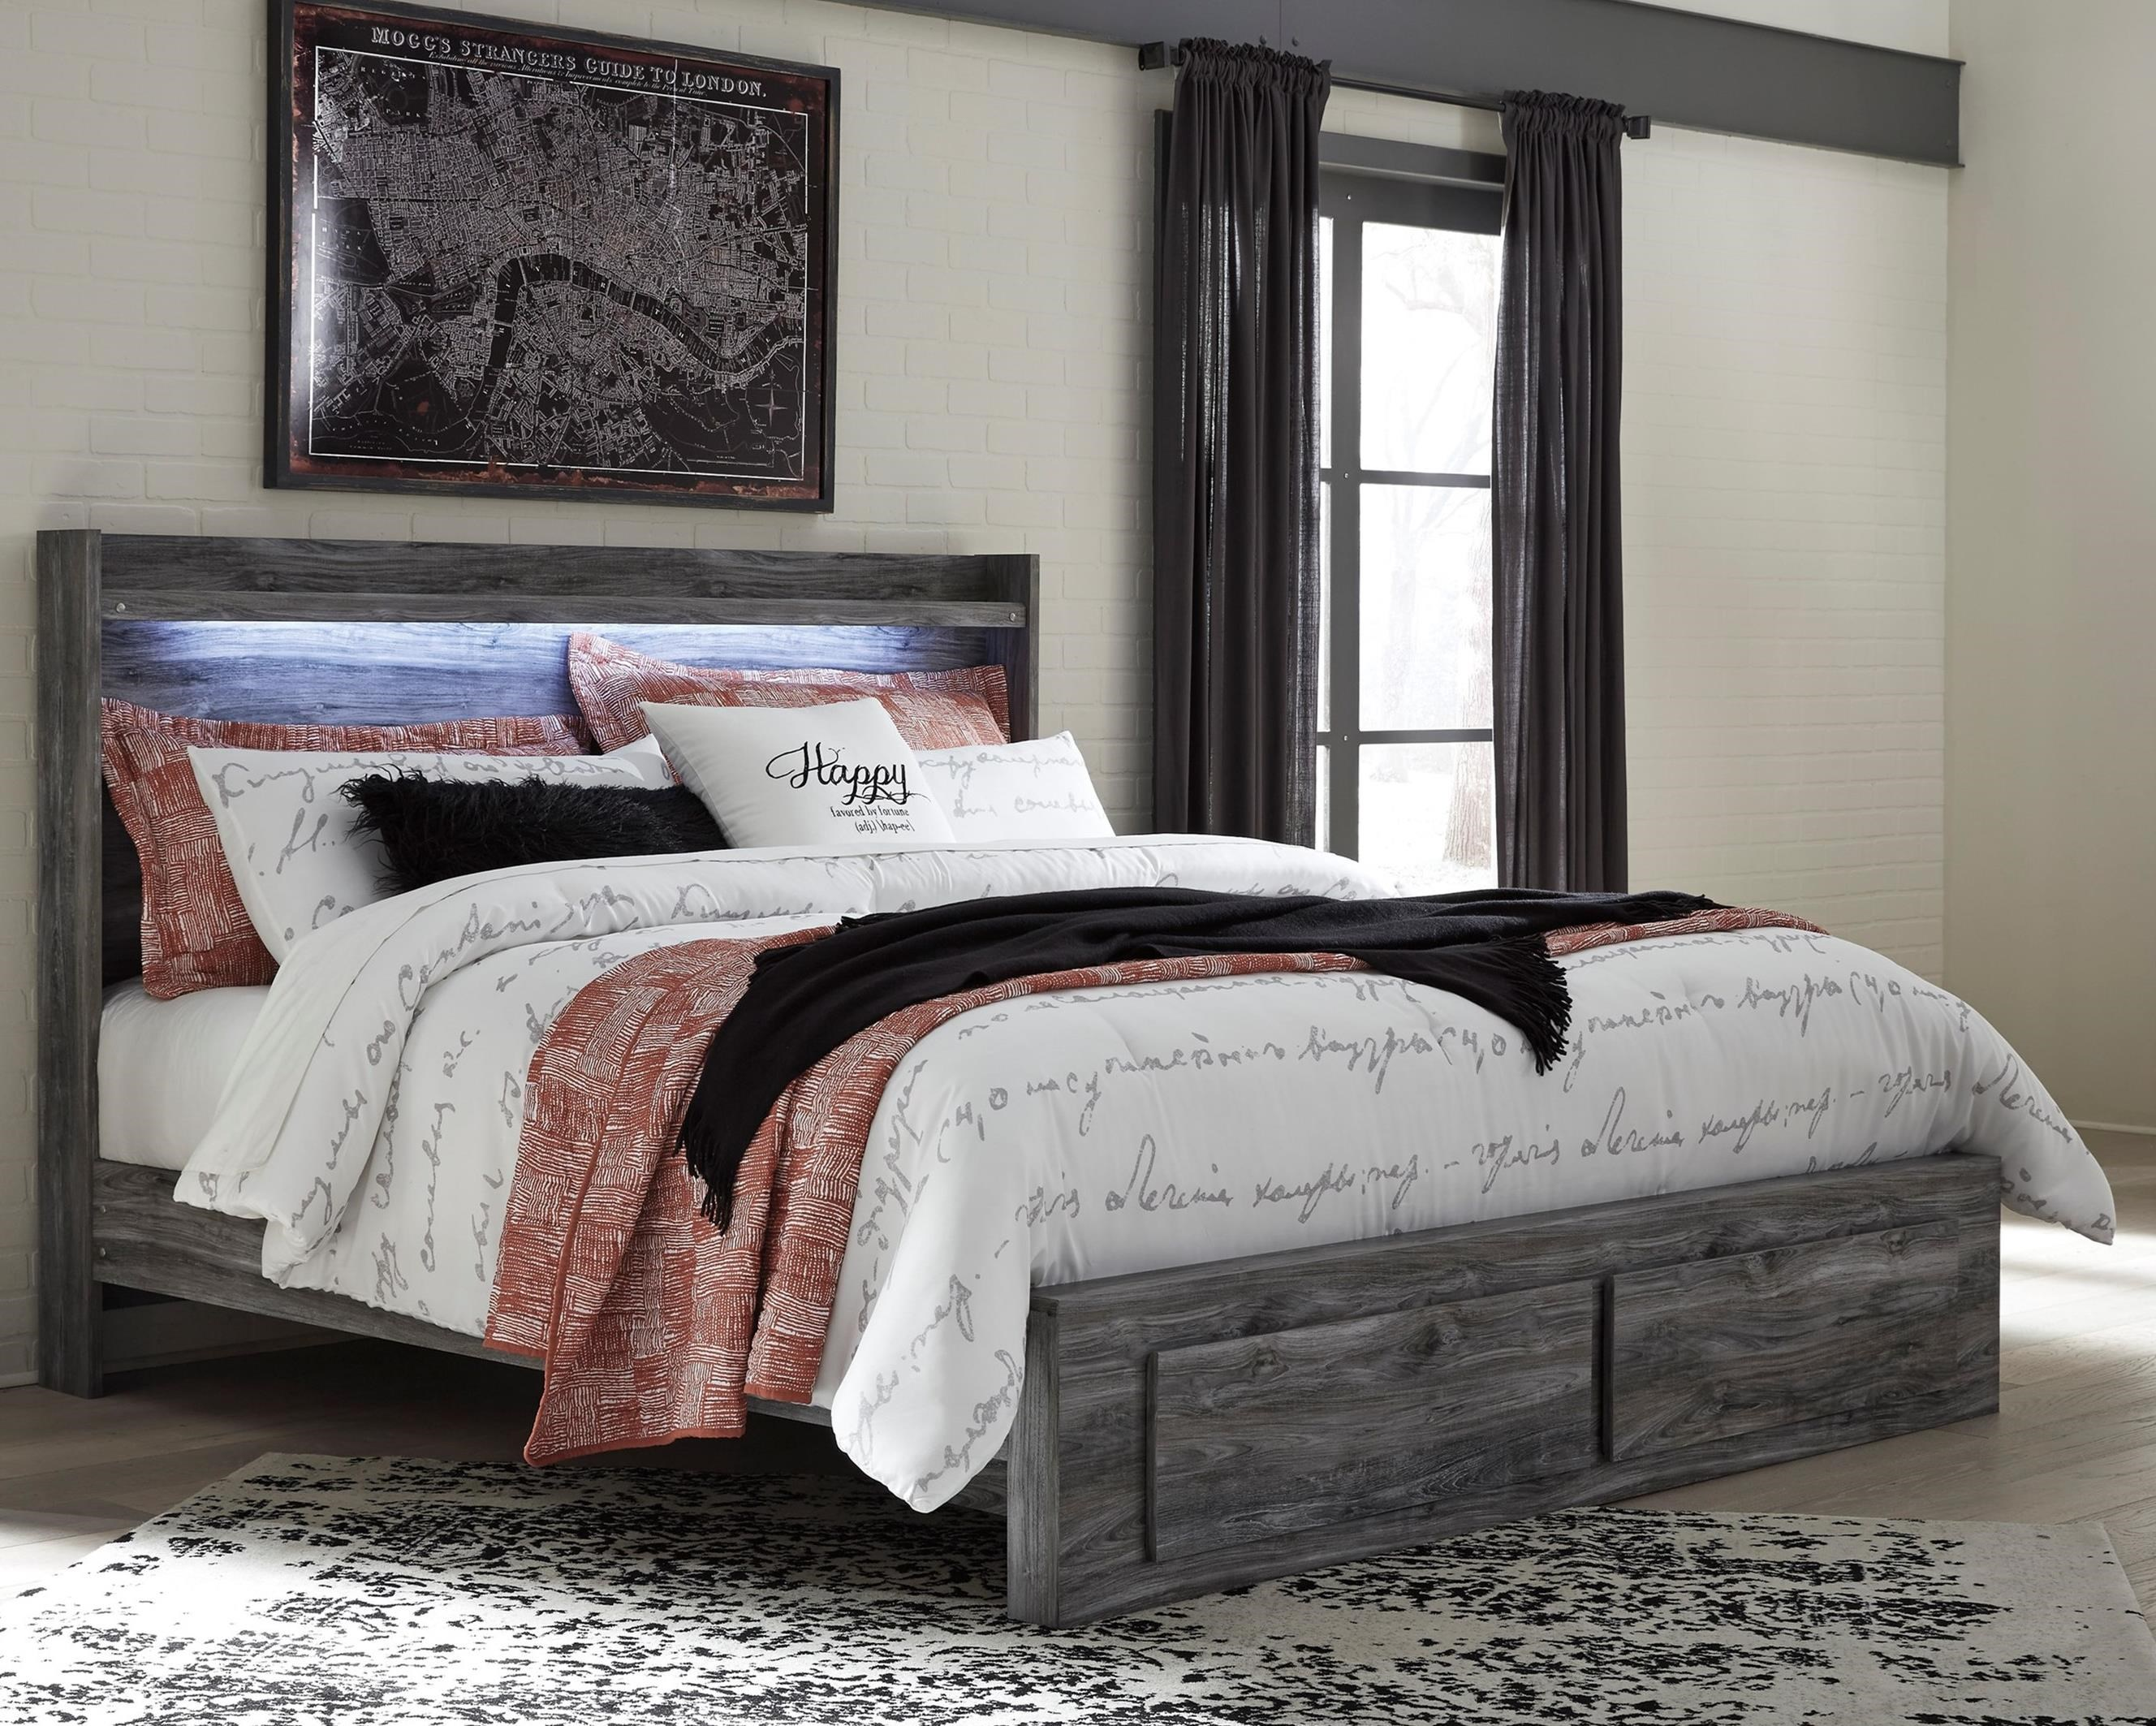 Baystorm King Panel Bed with Storage Footboard by Signature Design by Ashley at Sparks HomeStore